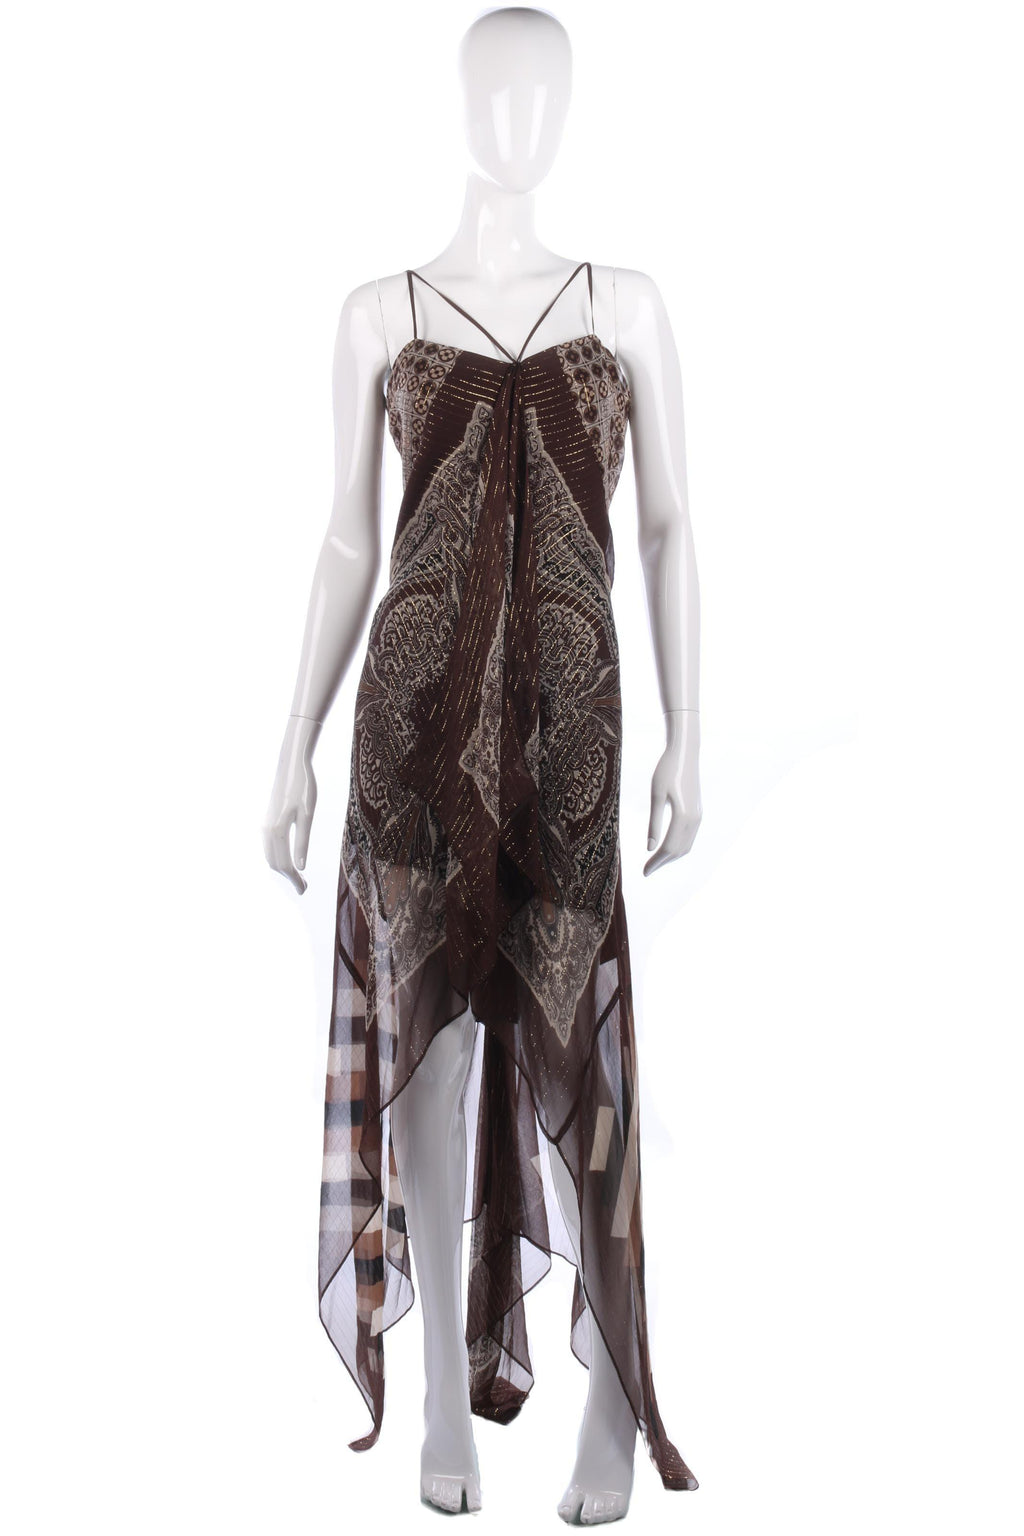 BCBG Maxazria Silk Dress Brown and Cream UK Size 10